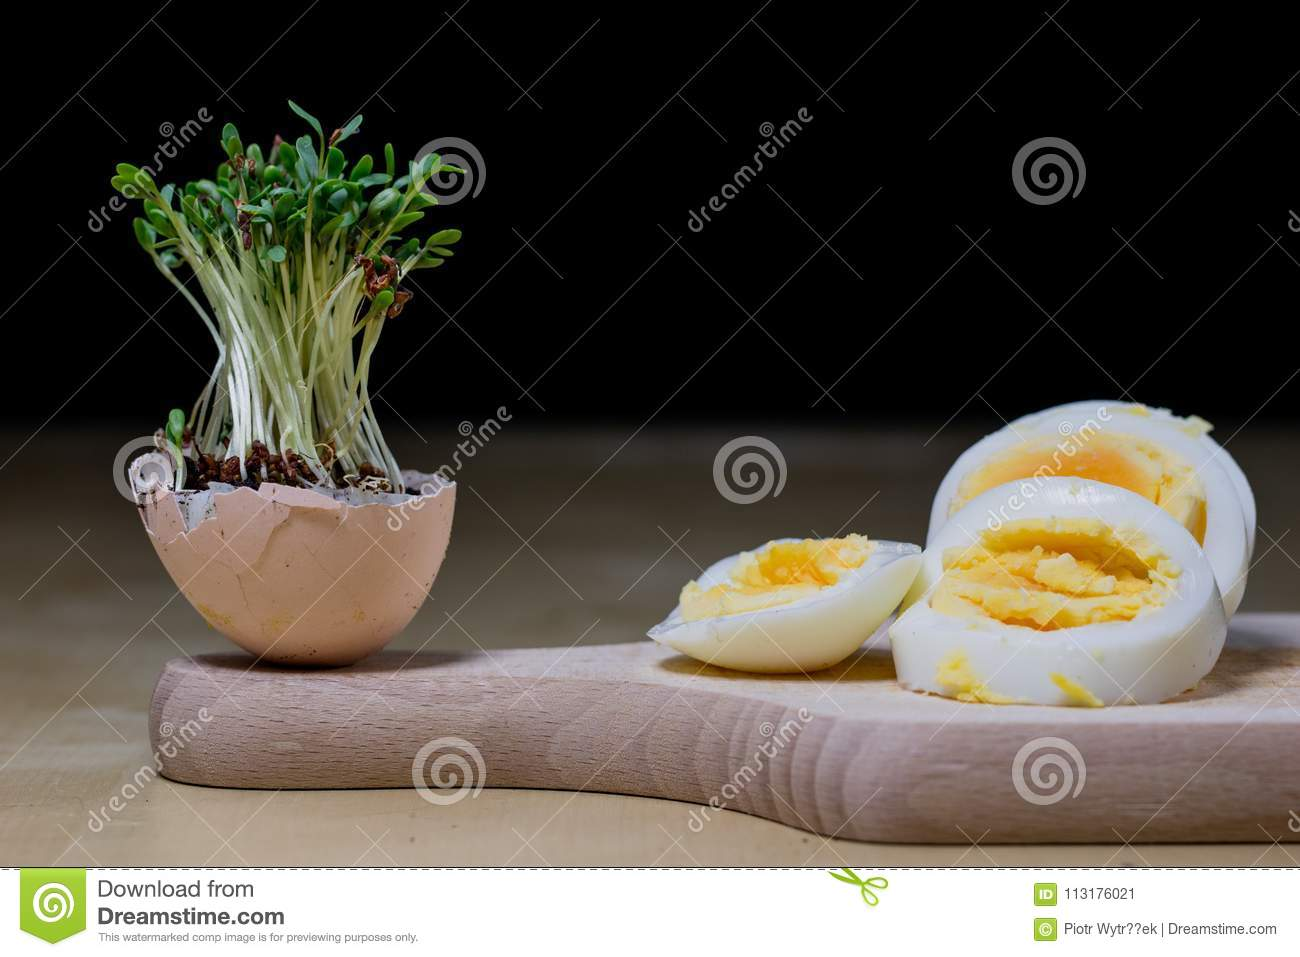 Cress Sprouts On The Kitchen Table Eggs And Herbs In The